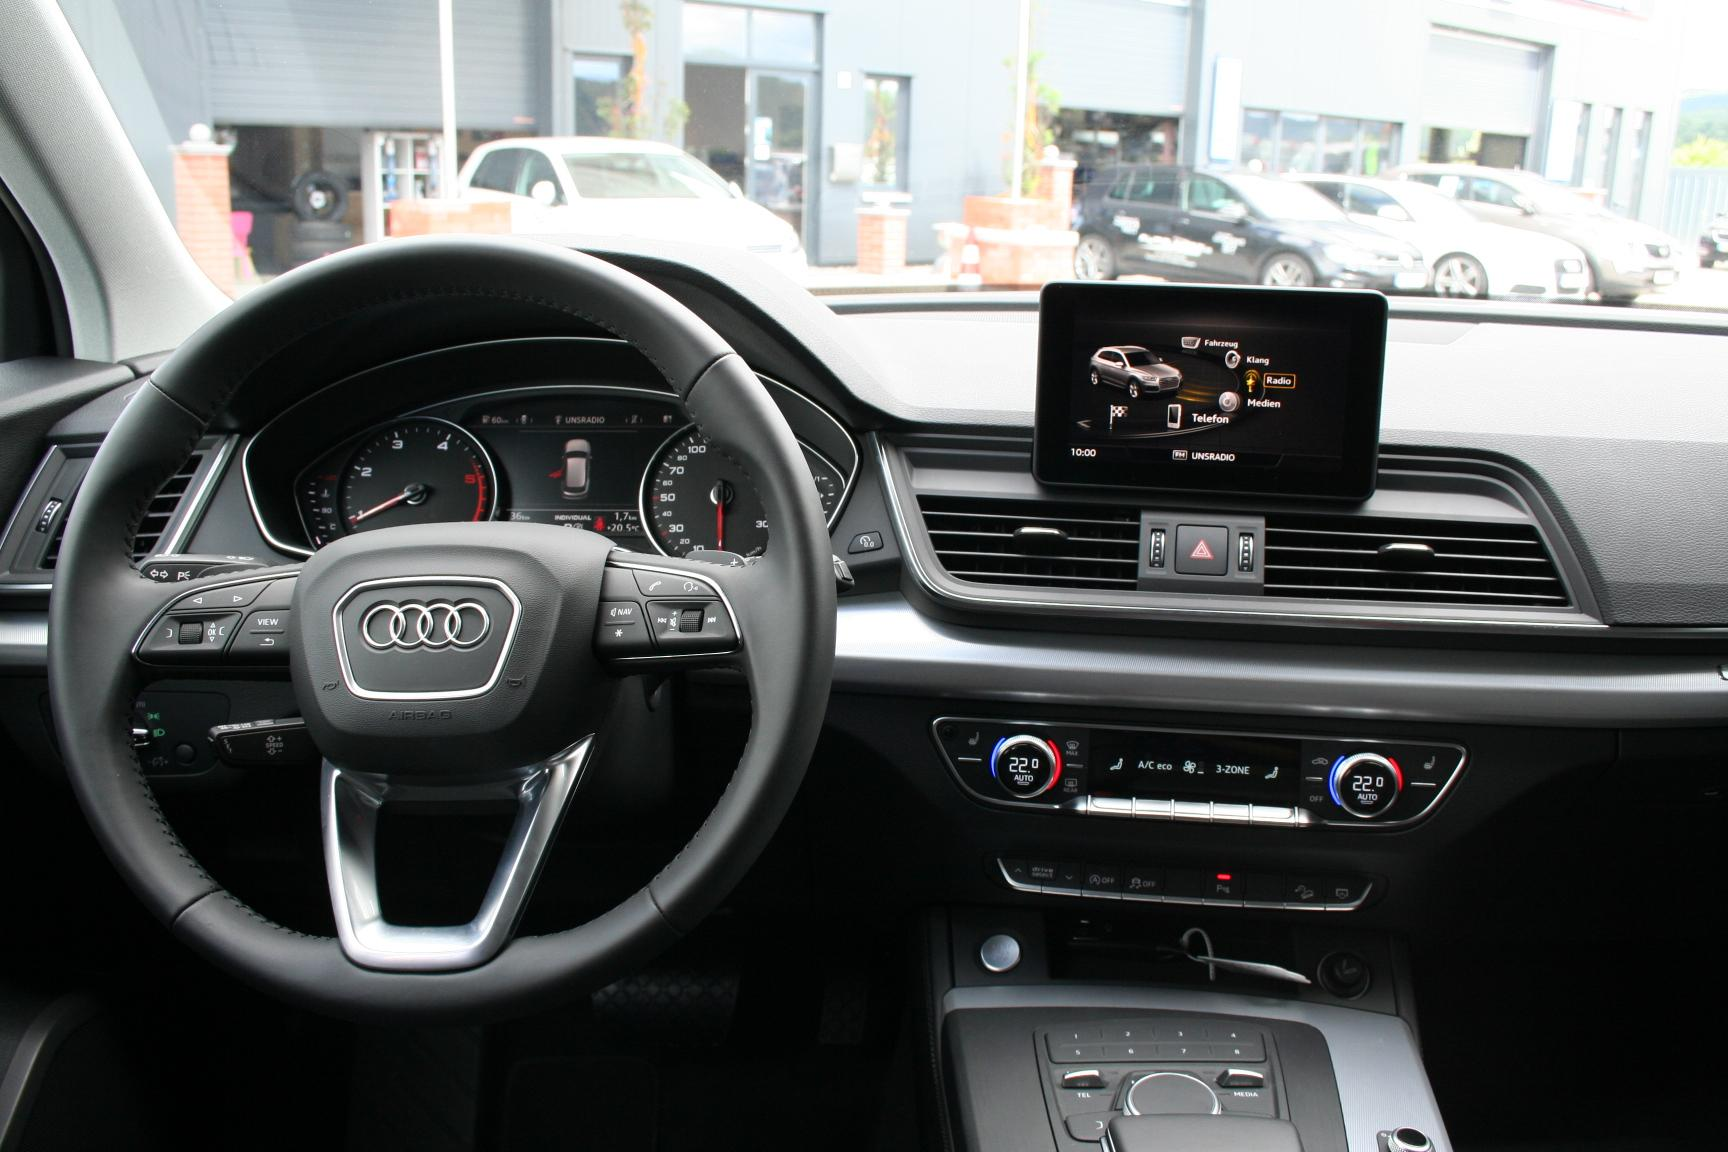 audi q5 neues modell 2 0 tdi 190 ps quattro s tronic 4jahregarantie vollled navi 18 alu sofort. Black Bedroom Furniture Sets. Home Design Ideas